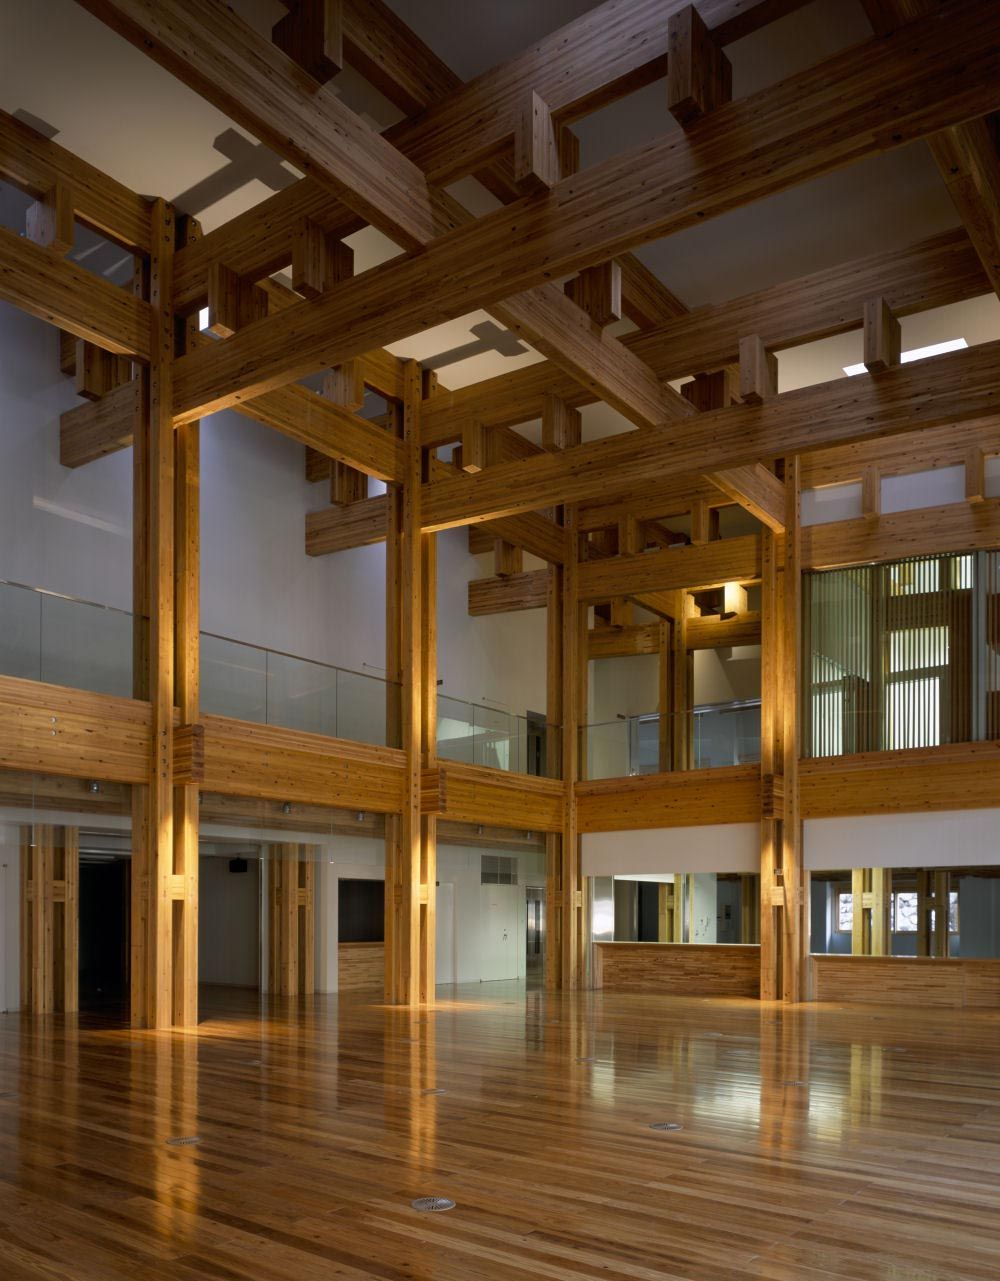 Interiors > Modern City Hall Interior The Yusuhara Town Hall ...